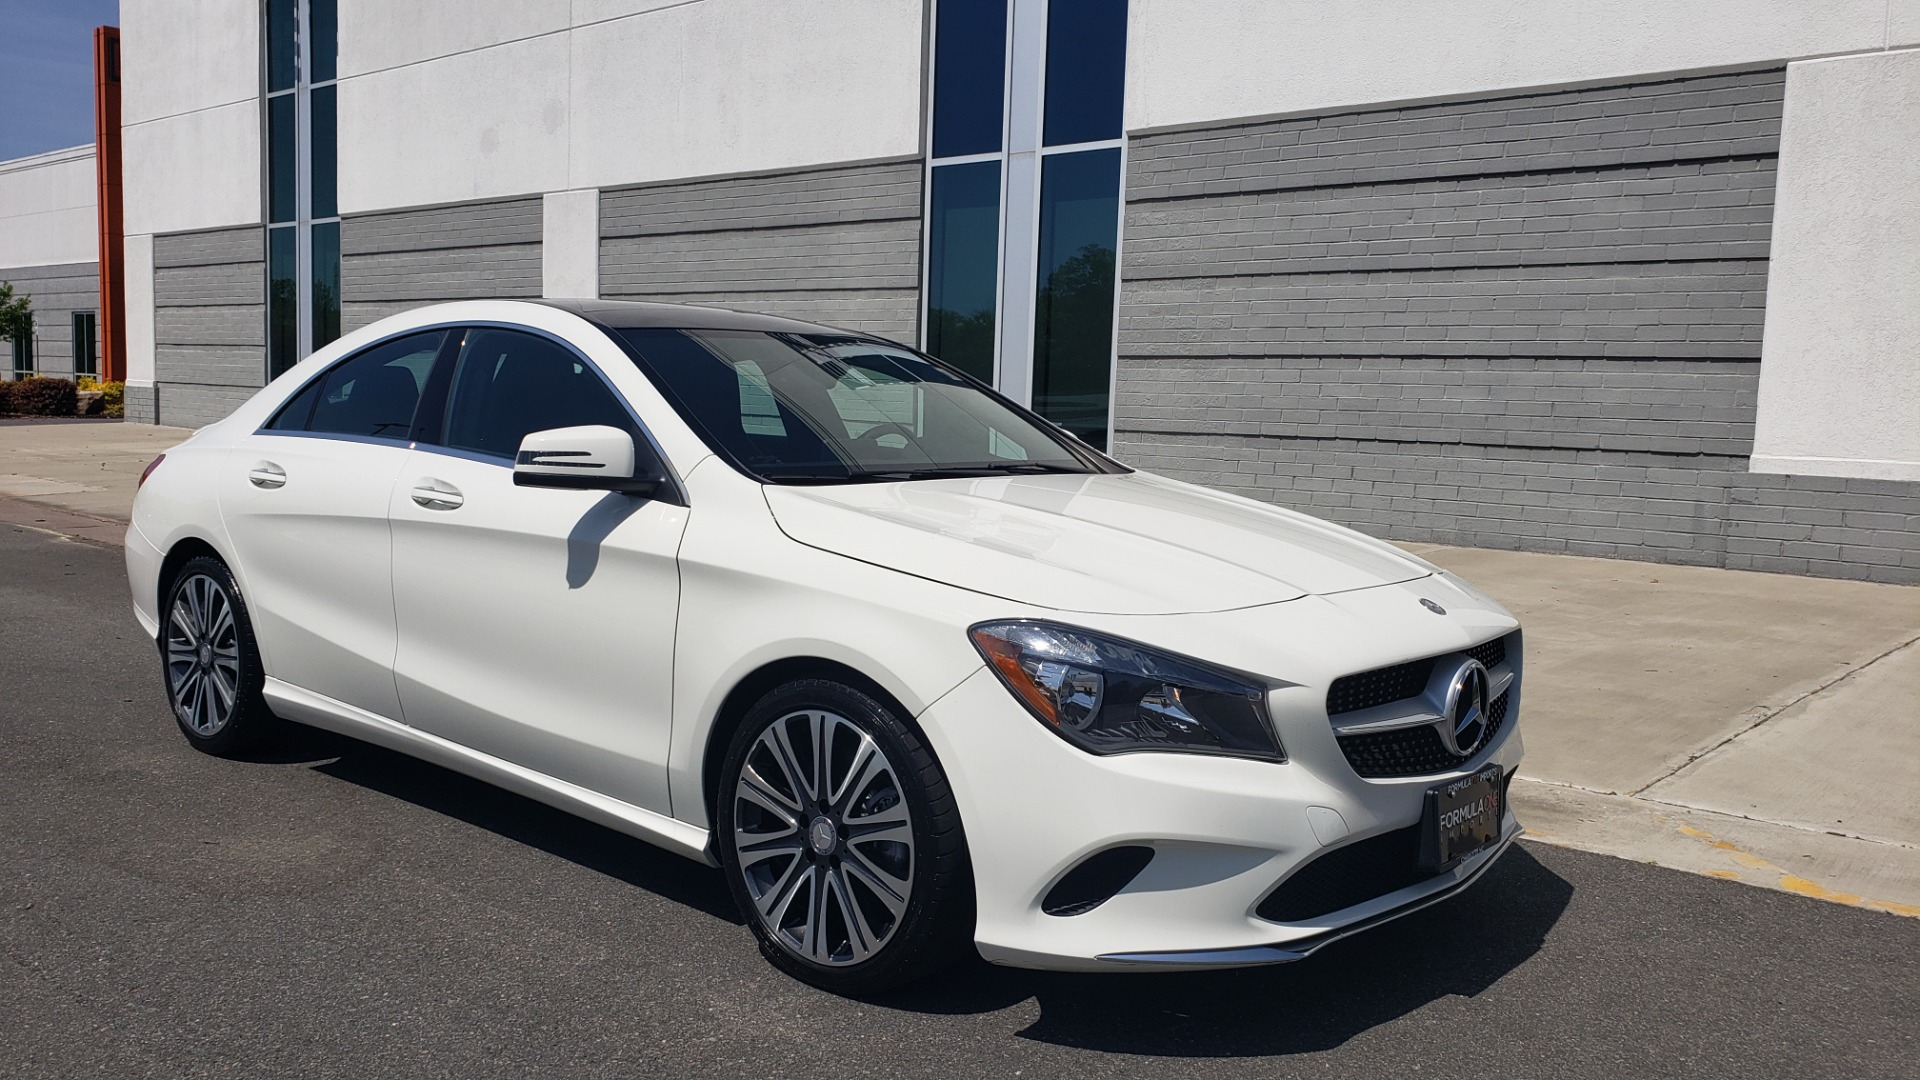 Used 2018 Mercedes-Benz CLA 250 4MATIC PREMIUM / PANO-ROOF / CONV PKG / APPLE / REARVIEW for sale $25,395 at Formula Imports in Charlotte NC 28227 6